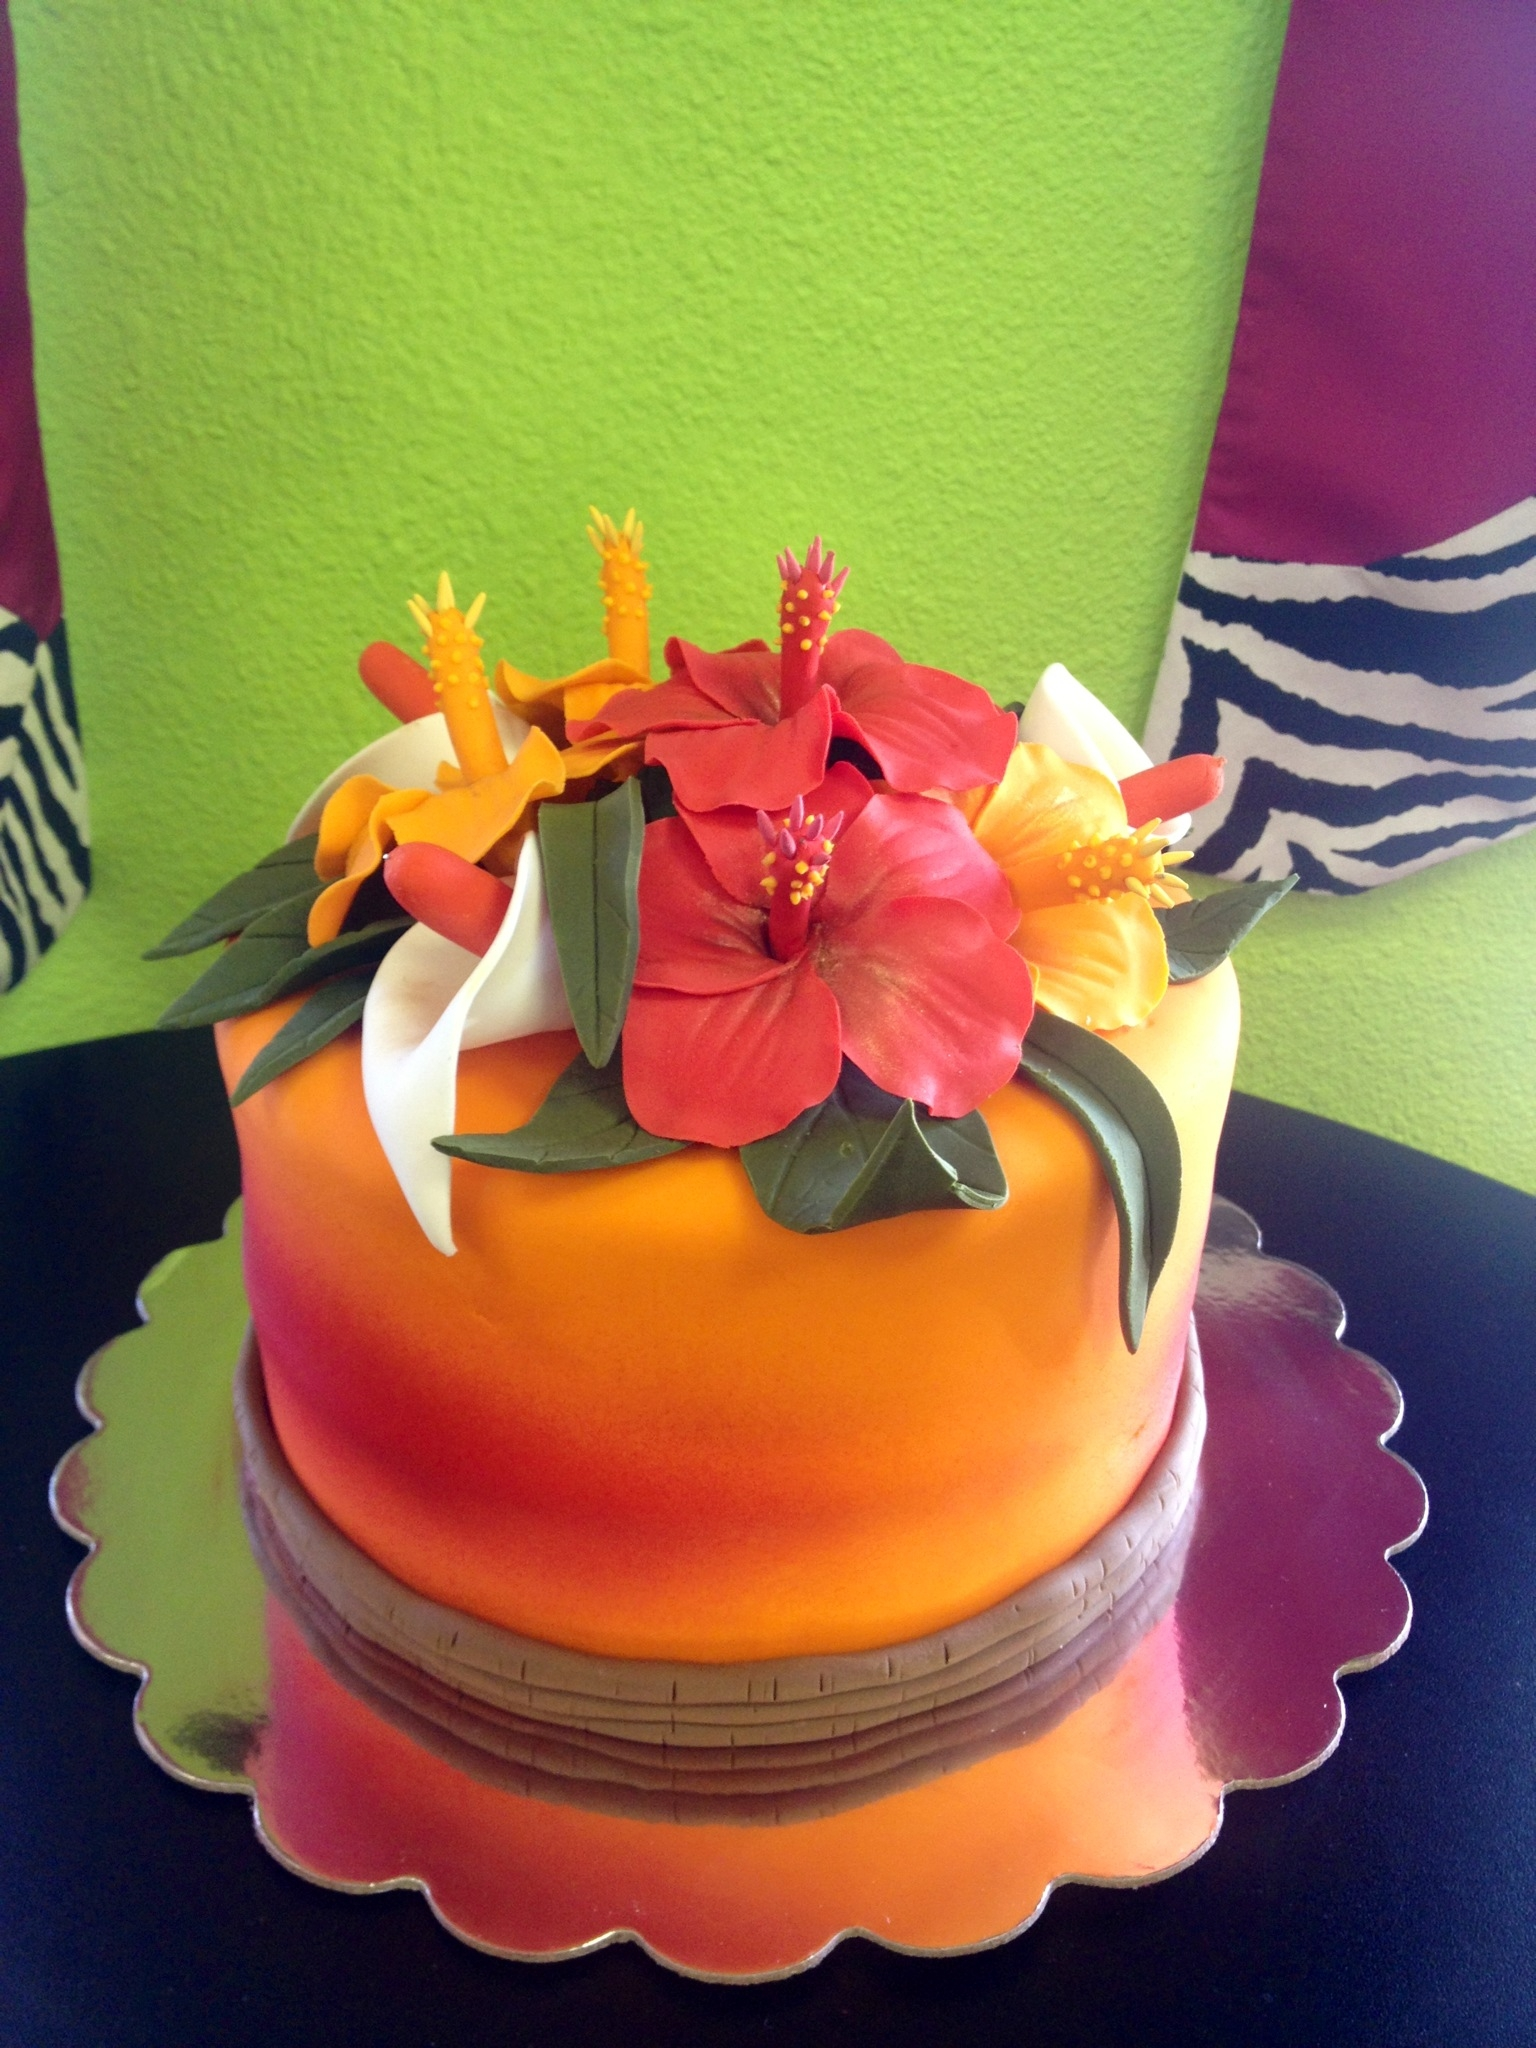 This Is My Sunset In Hawaii Cake That I Made For An Order At Work I